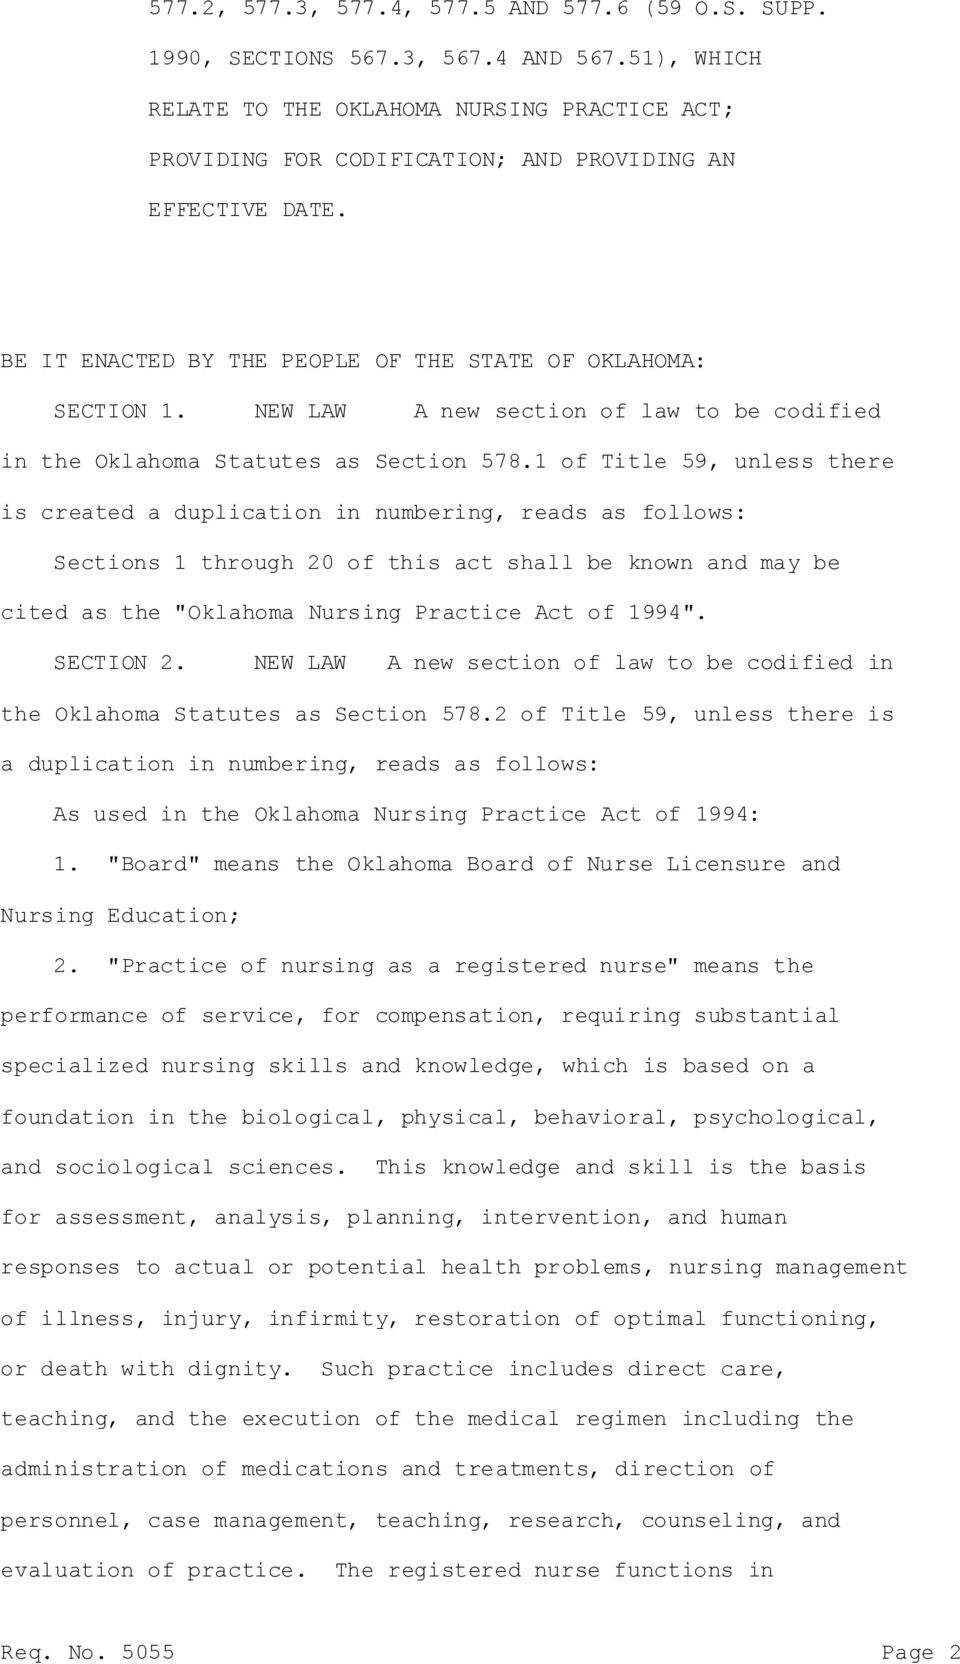 NEW LAW A new section of law to be codified in the Oklahoma Statutes as Section 578.